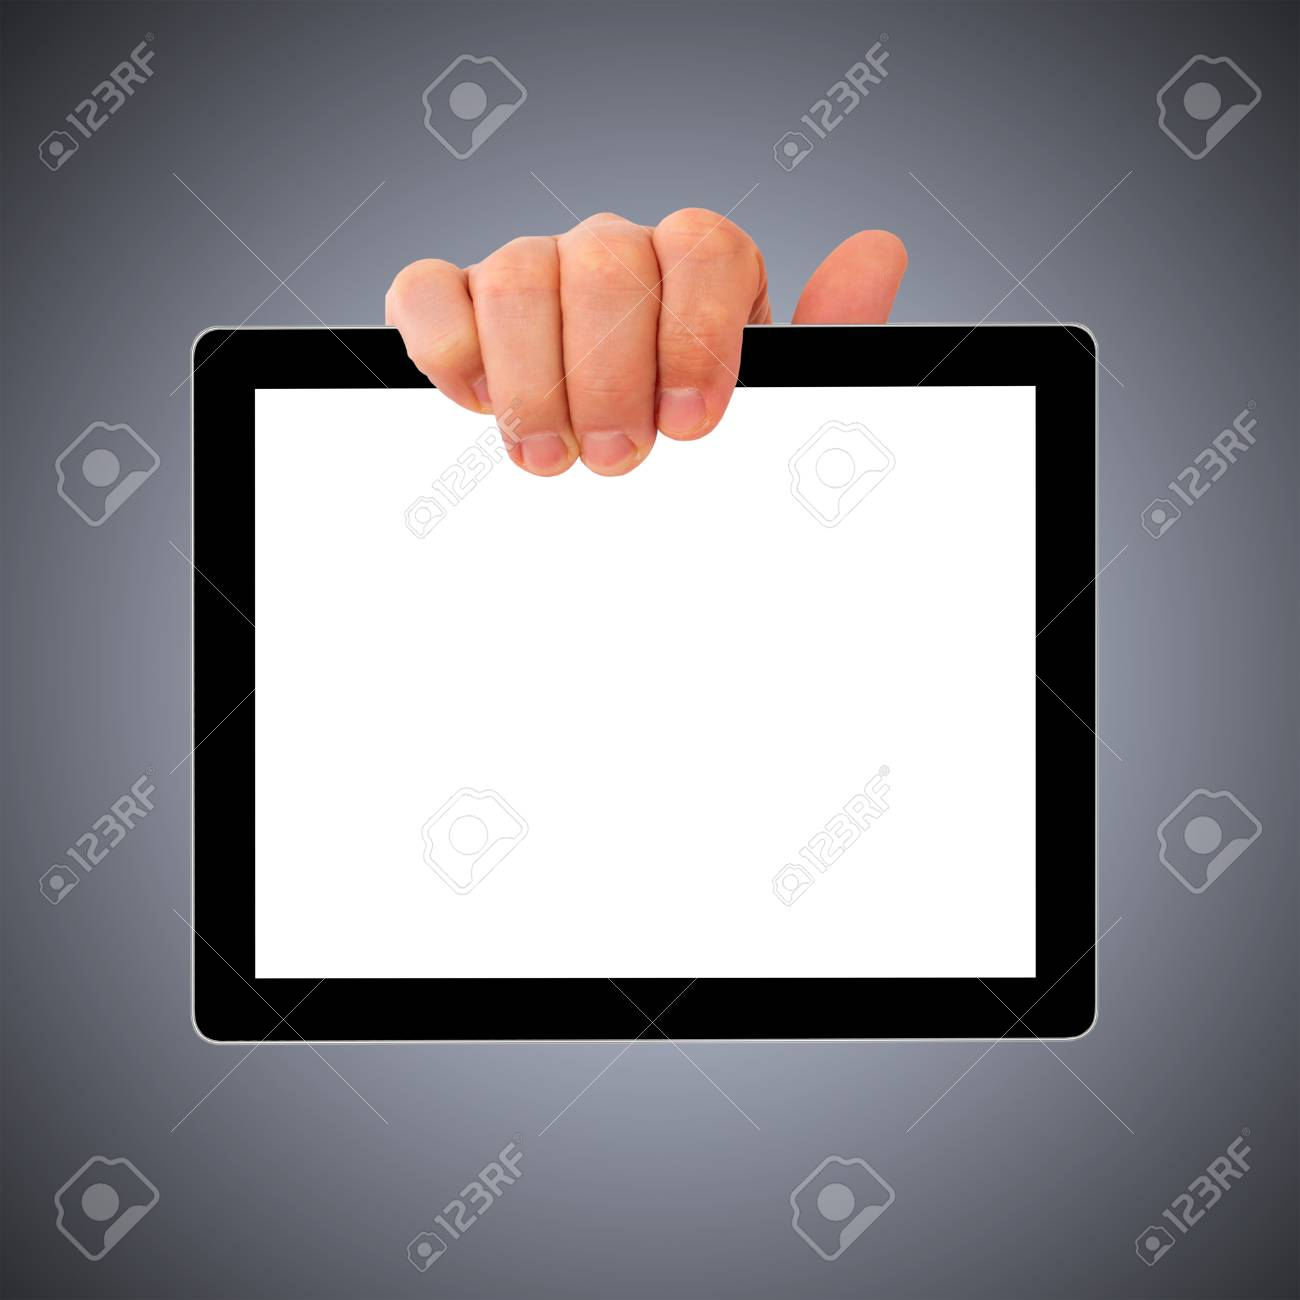 digital tablet pc with businessman hand. Isolated on white. Stock Photo - 23248311